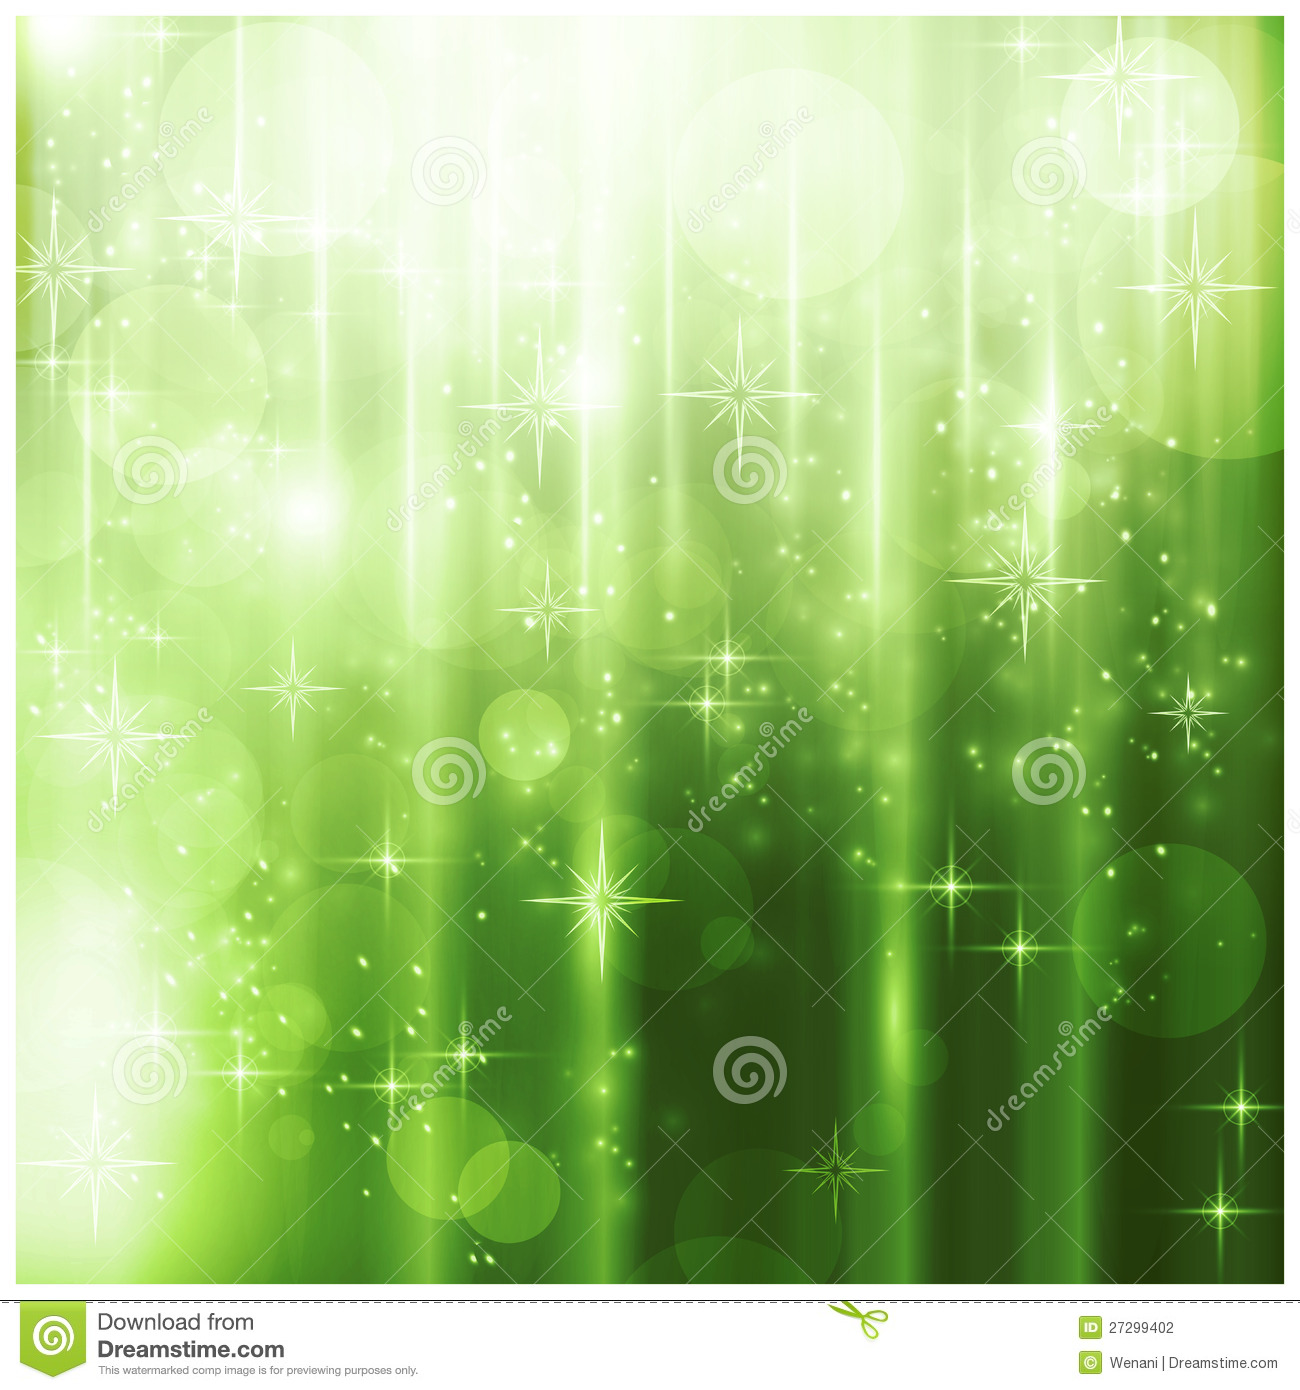 Elegant Green Christmas Card With Sparkling Lights Stock Photography ...